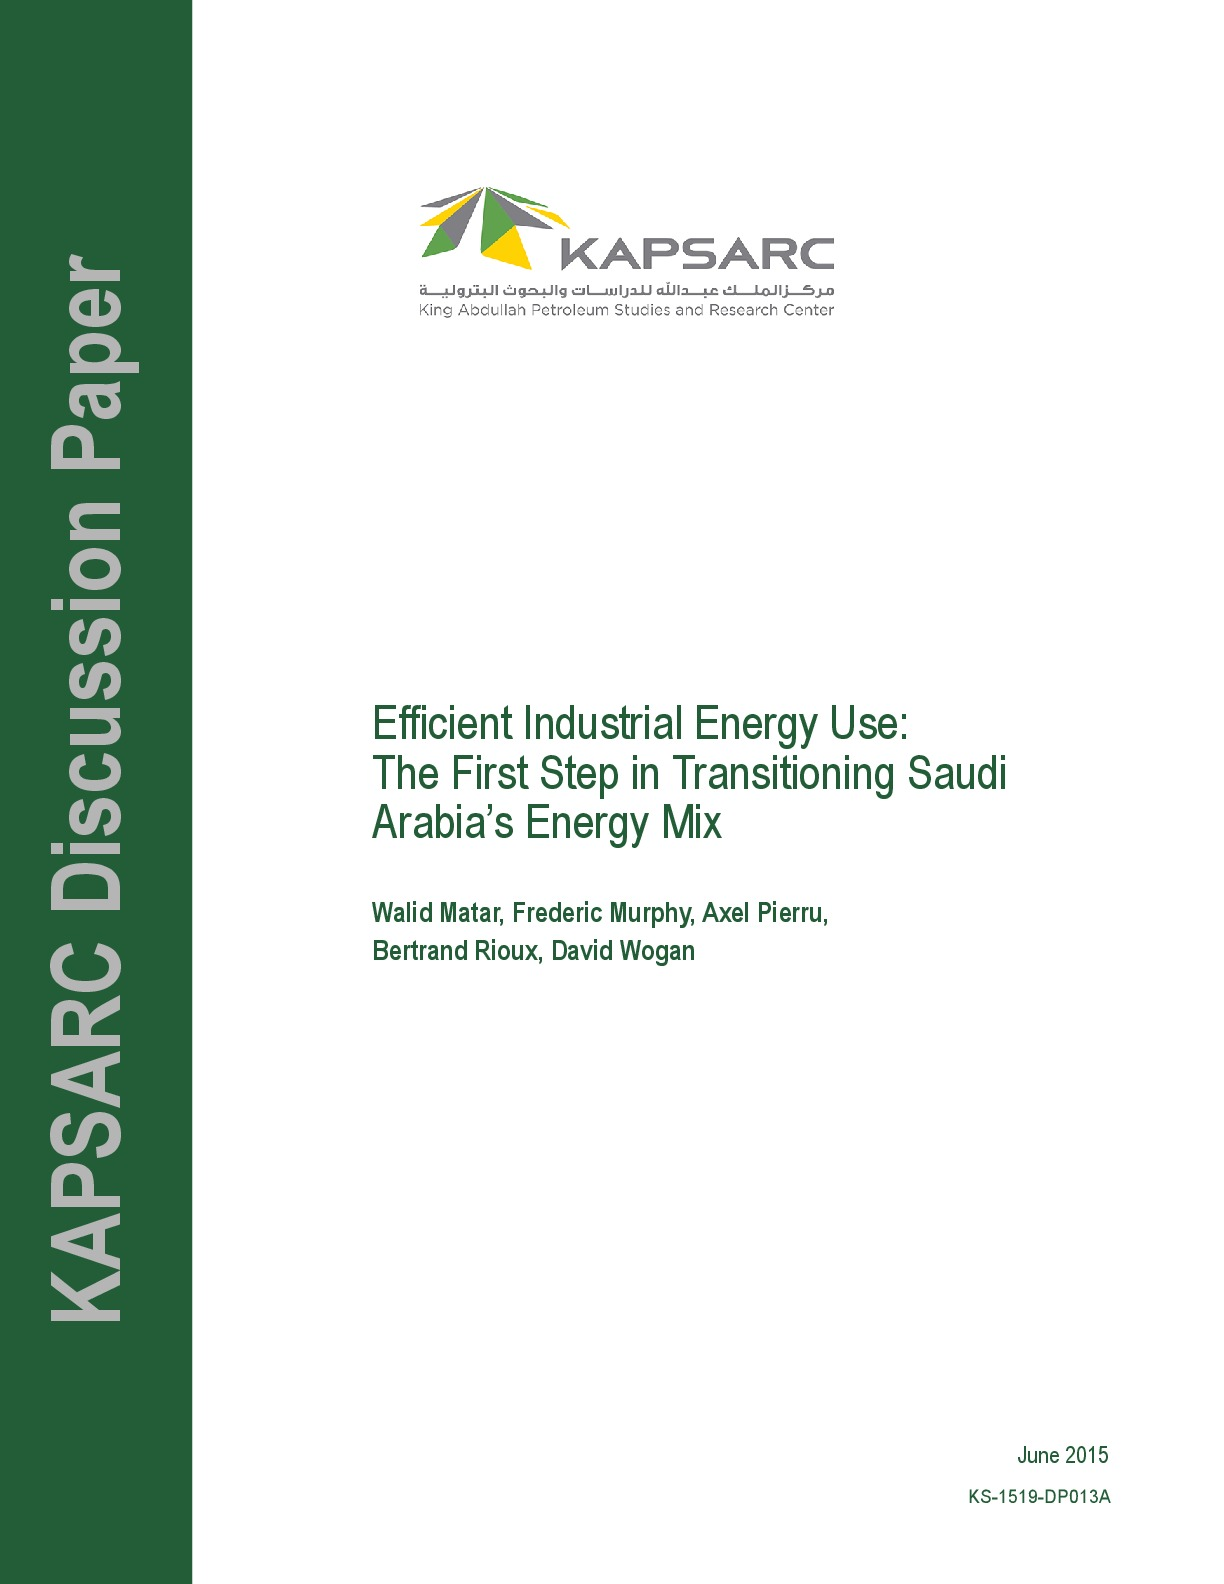 Efficient Industrial Energy Use: The First Step in Transitioning Saudi Arabia's Energy Mix